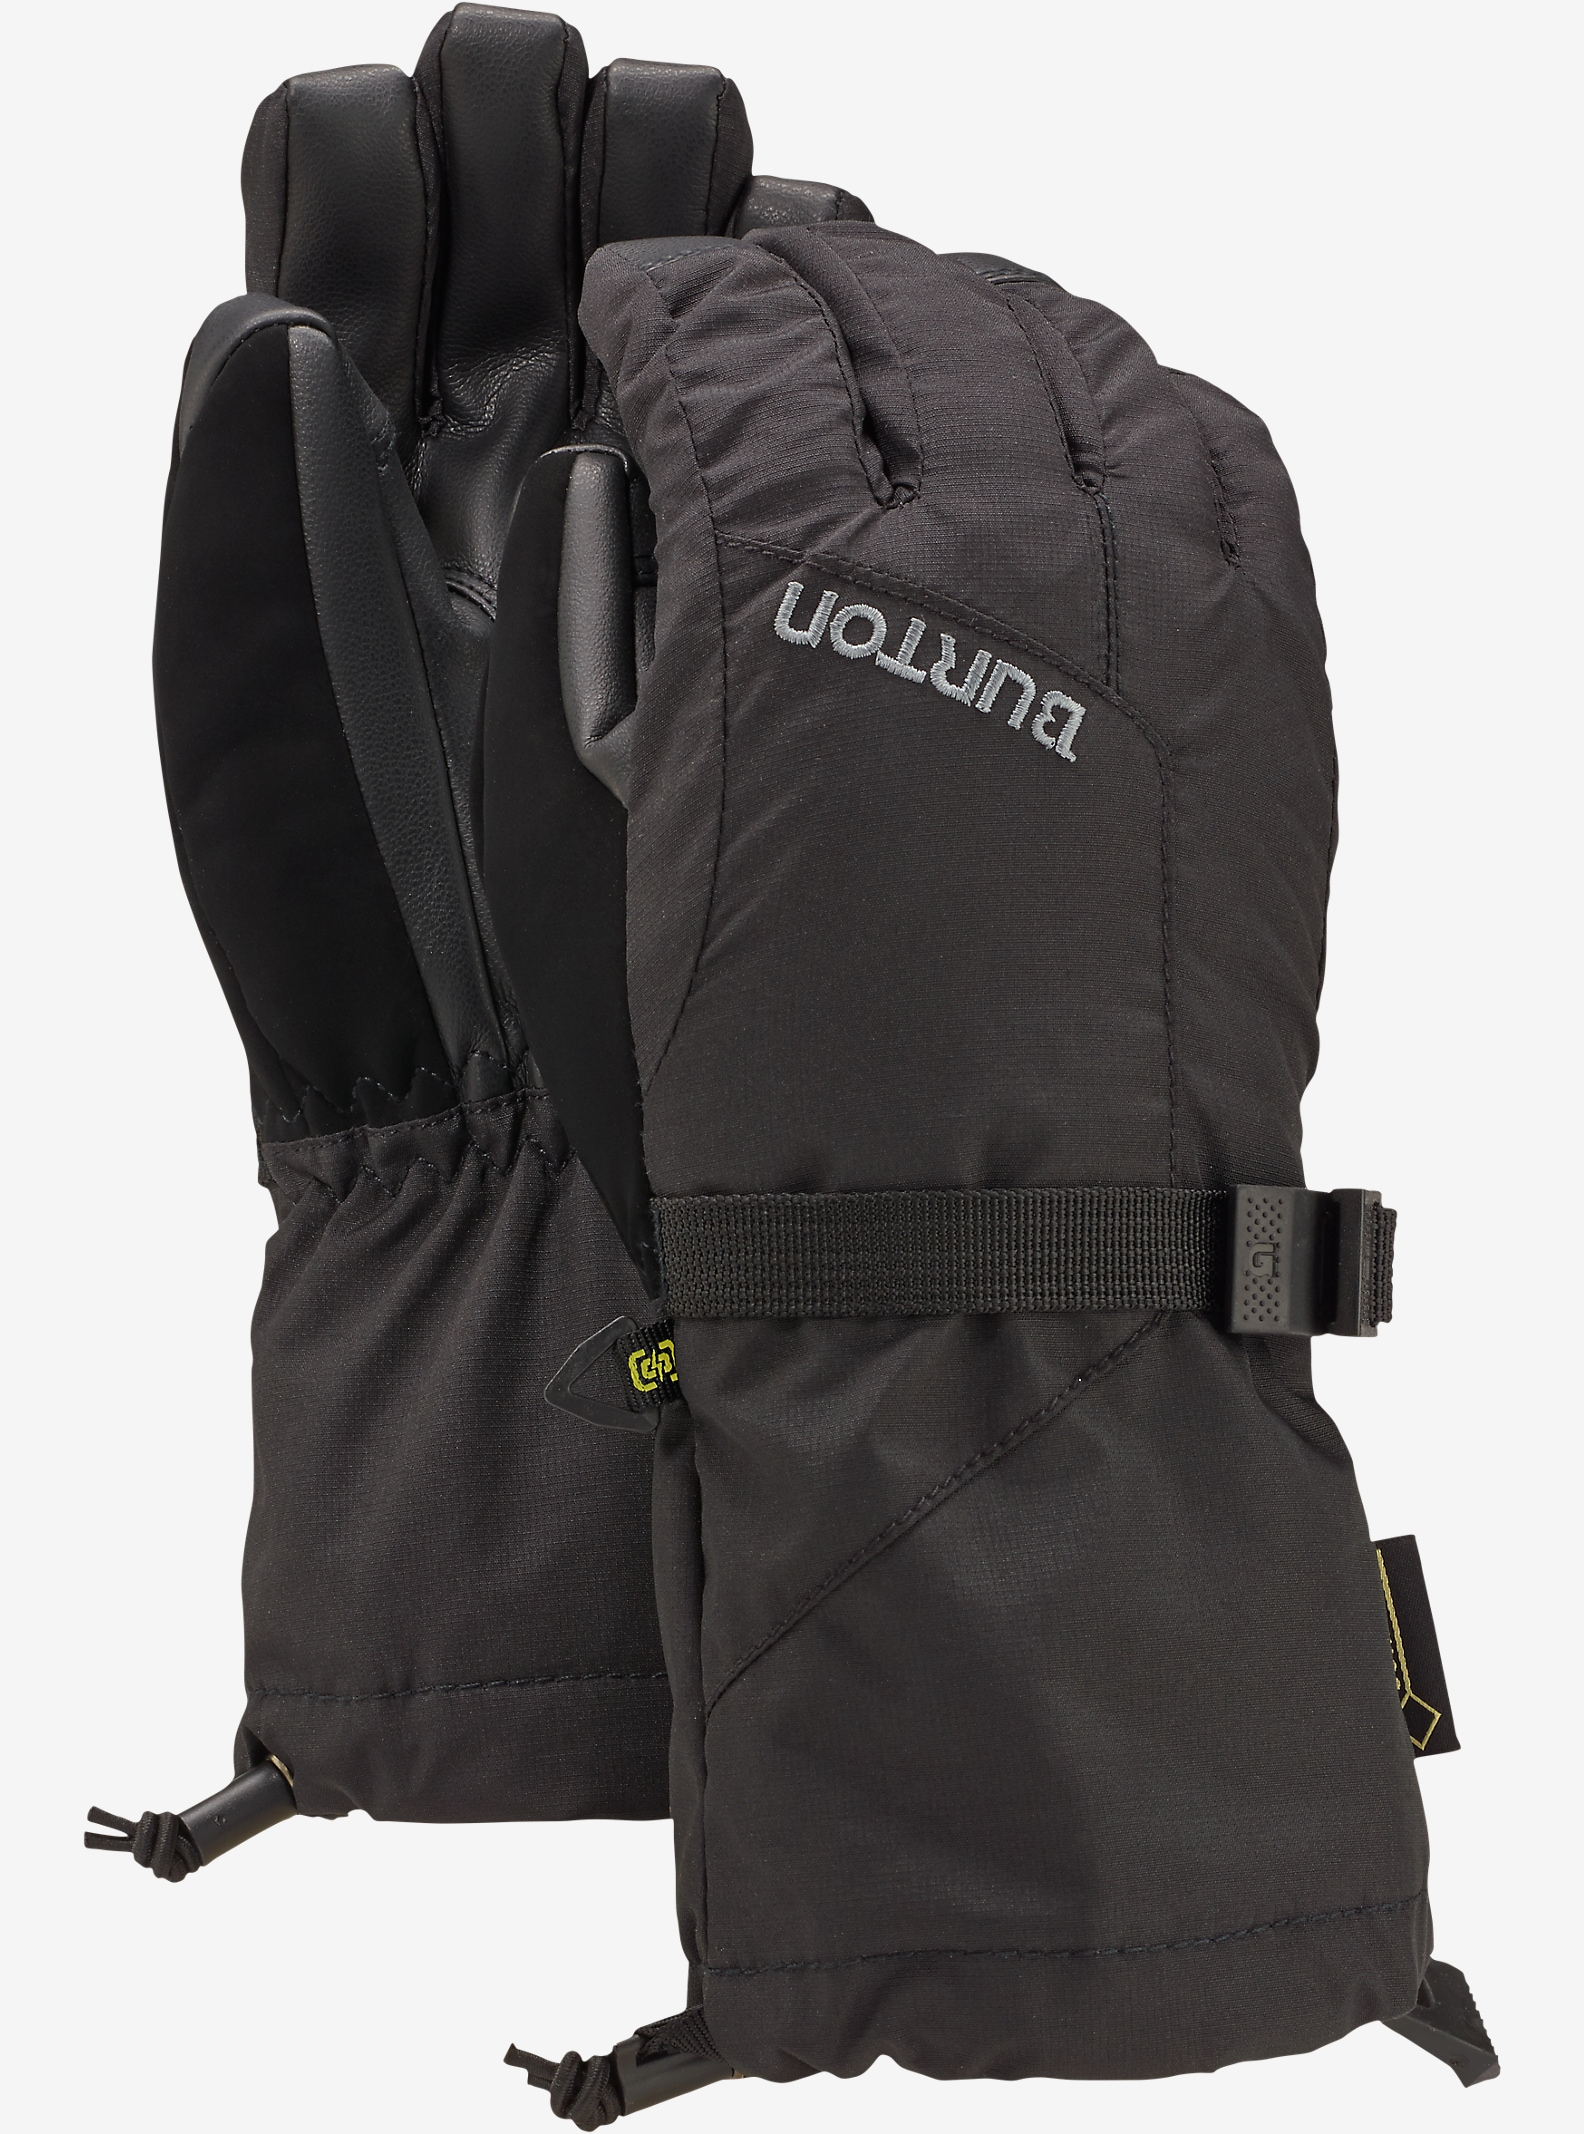 Kids' Burton GORE-TEX® Glove shown in True Black